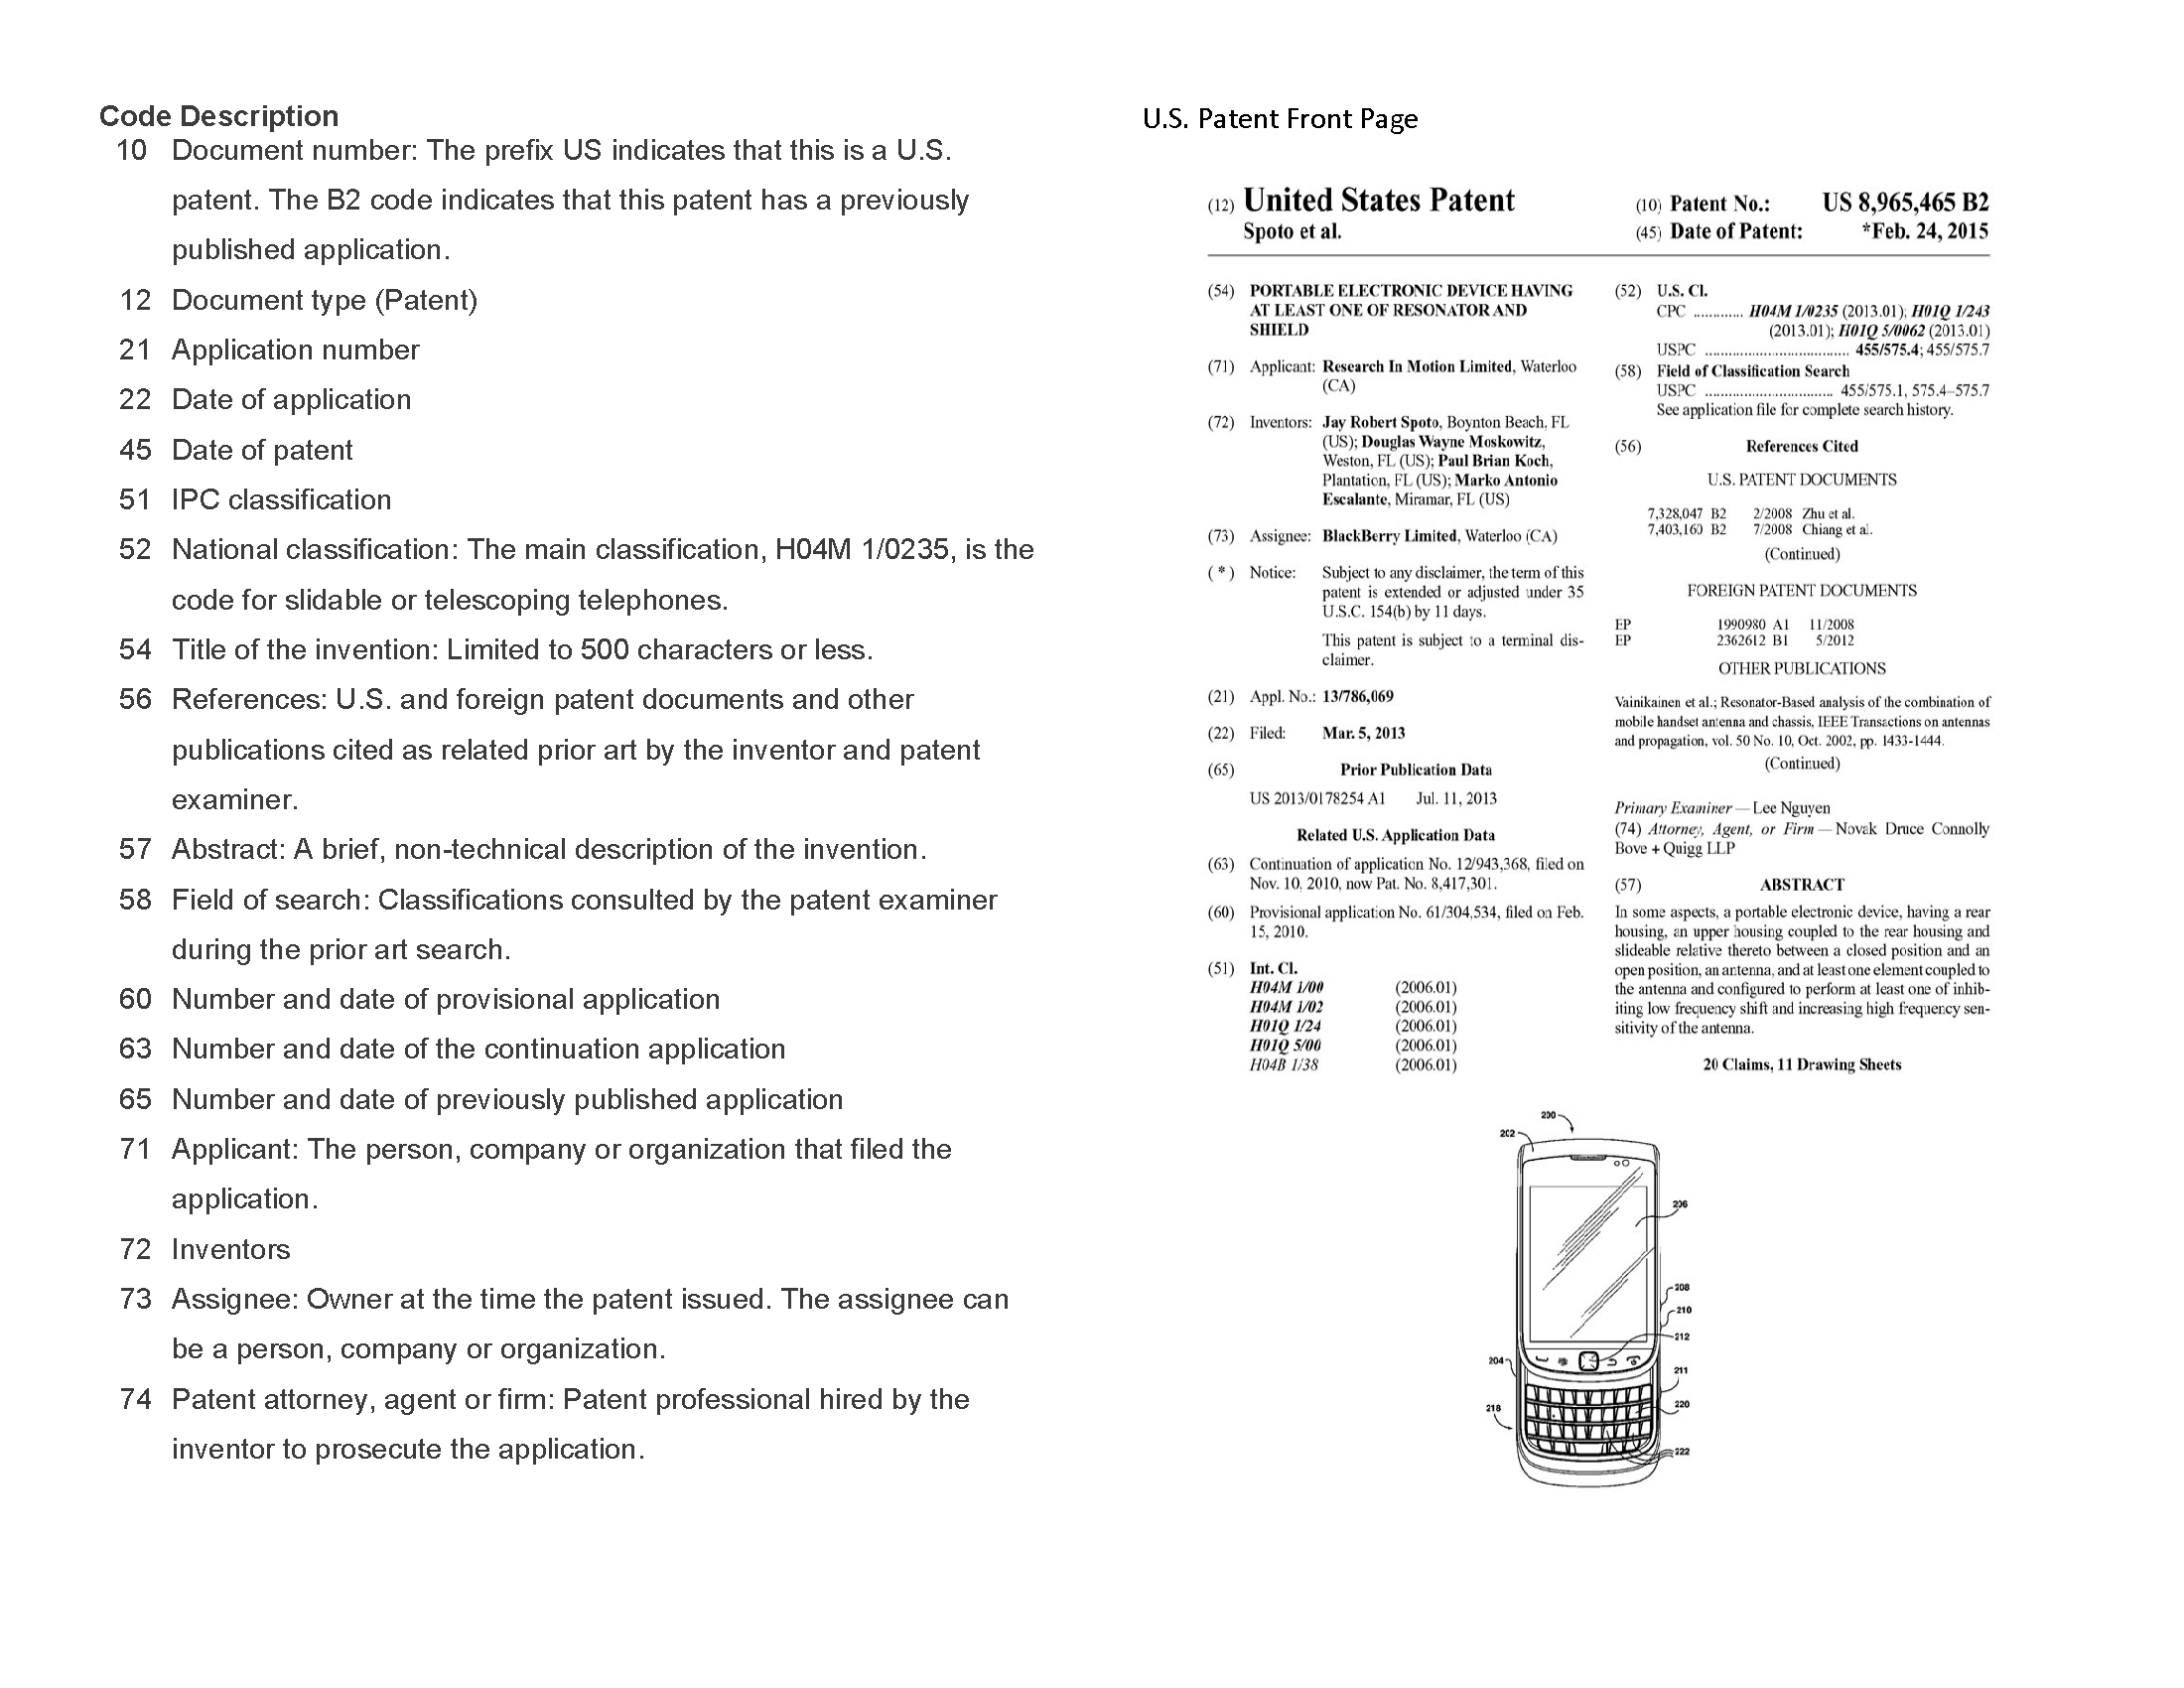 Sample Patent Front Page with Code Descriptions